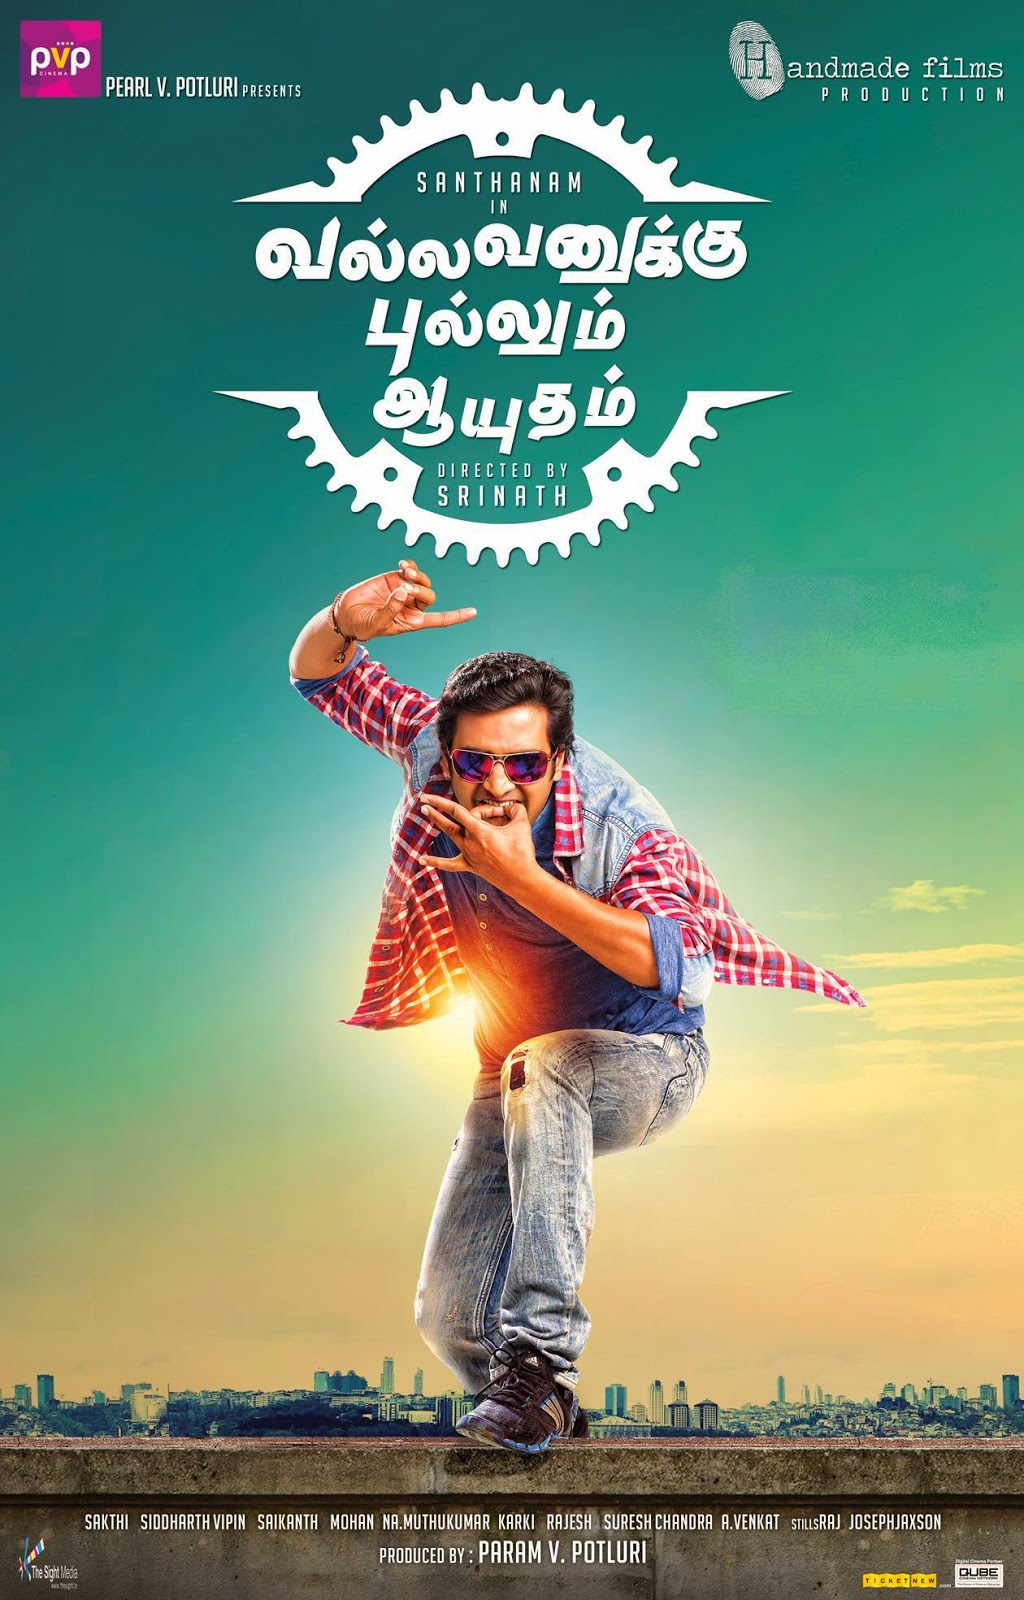 Watch Vallavanukku Pullum Aayudham (2014) Tamil Movie Watch Online Free Download